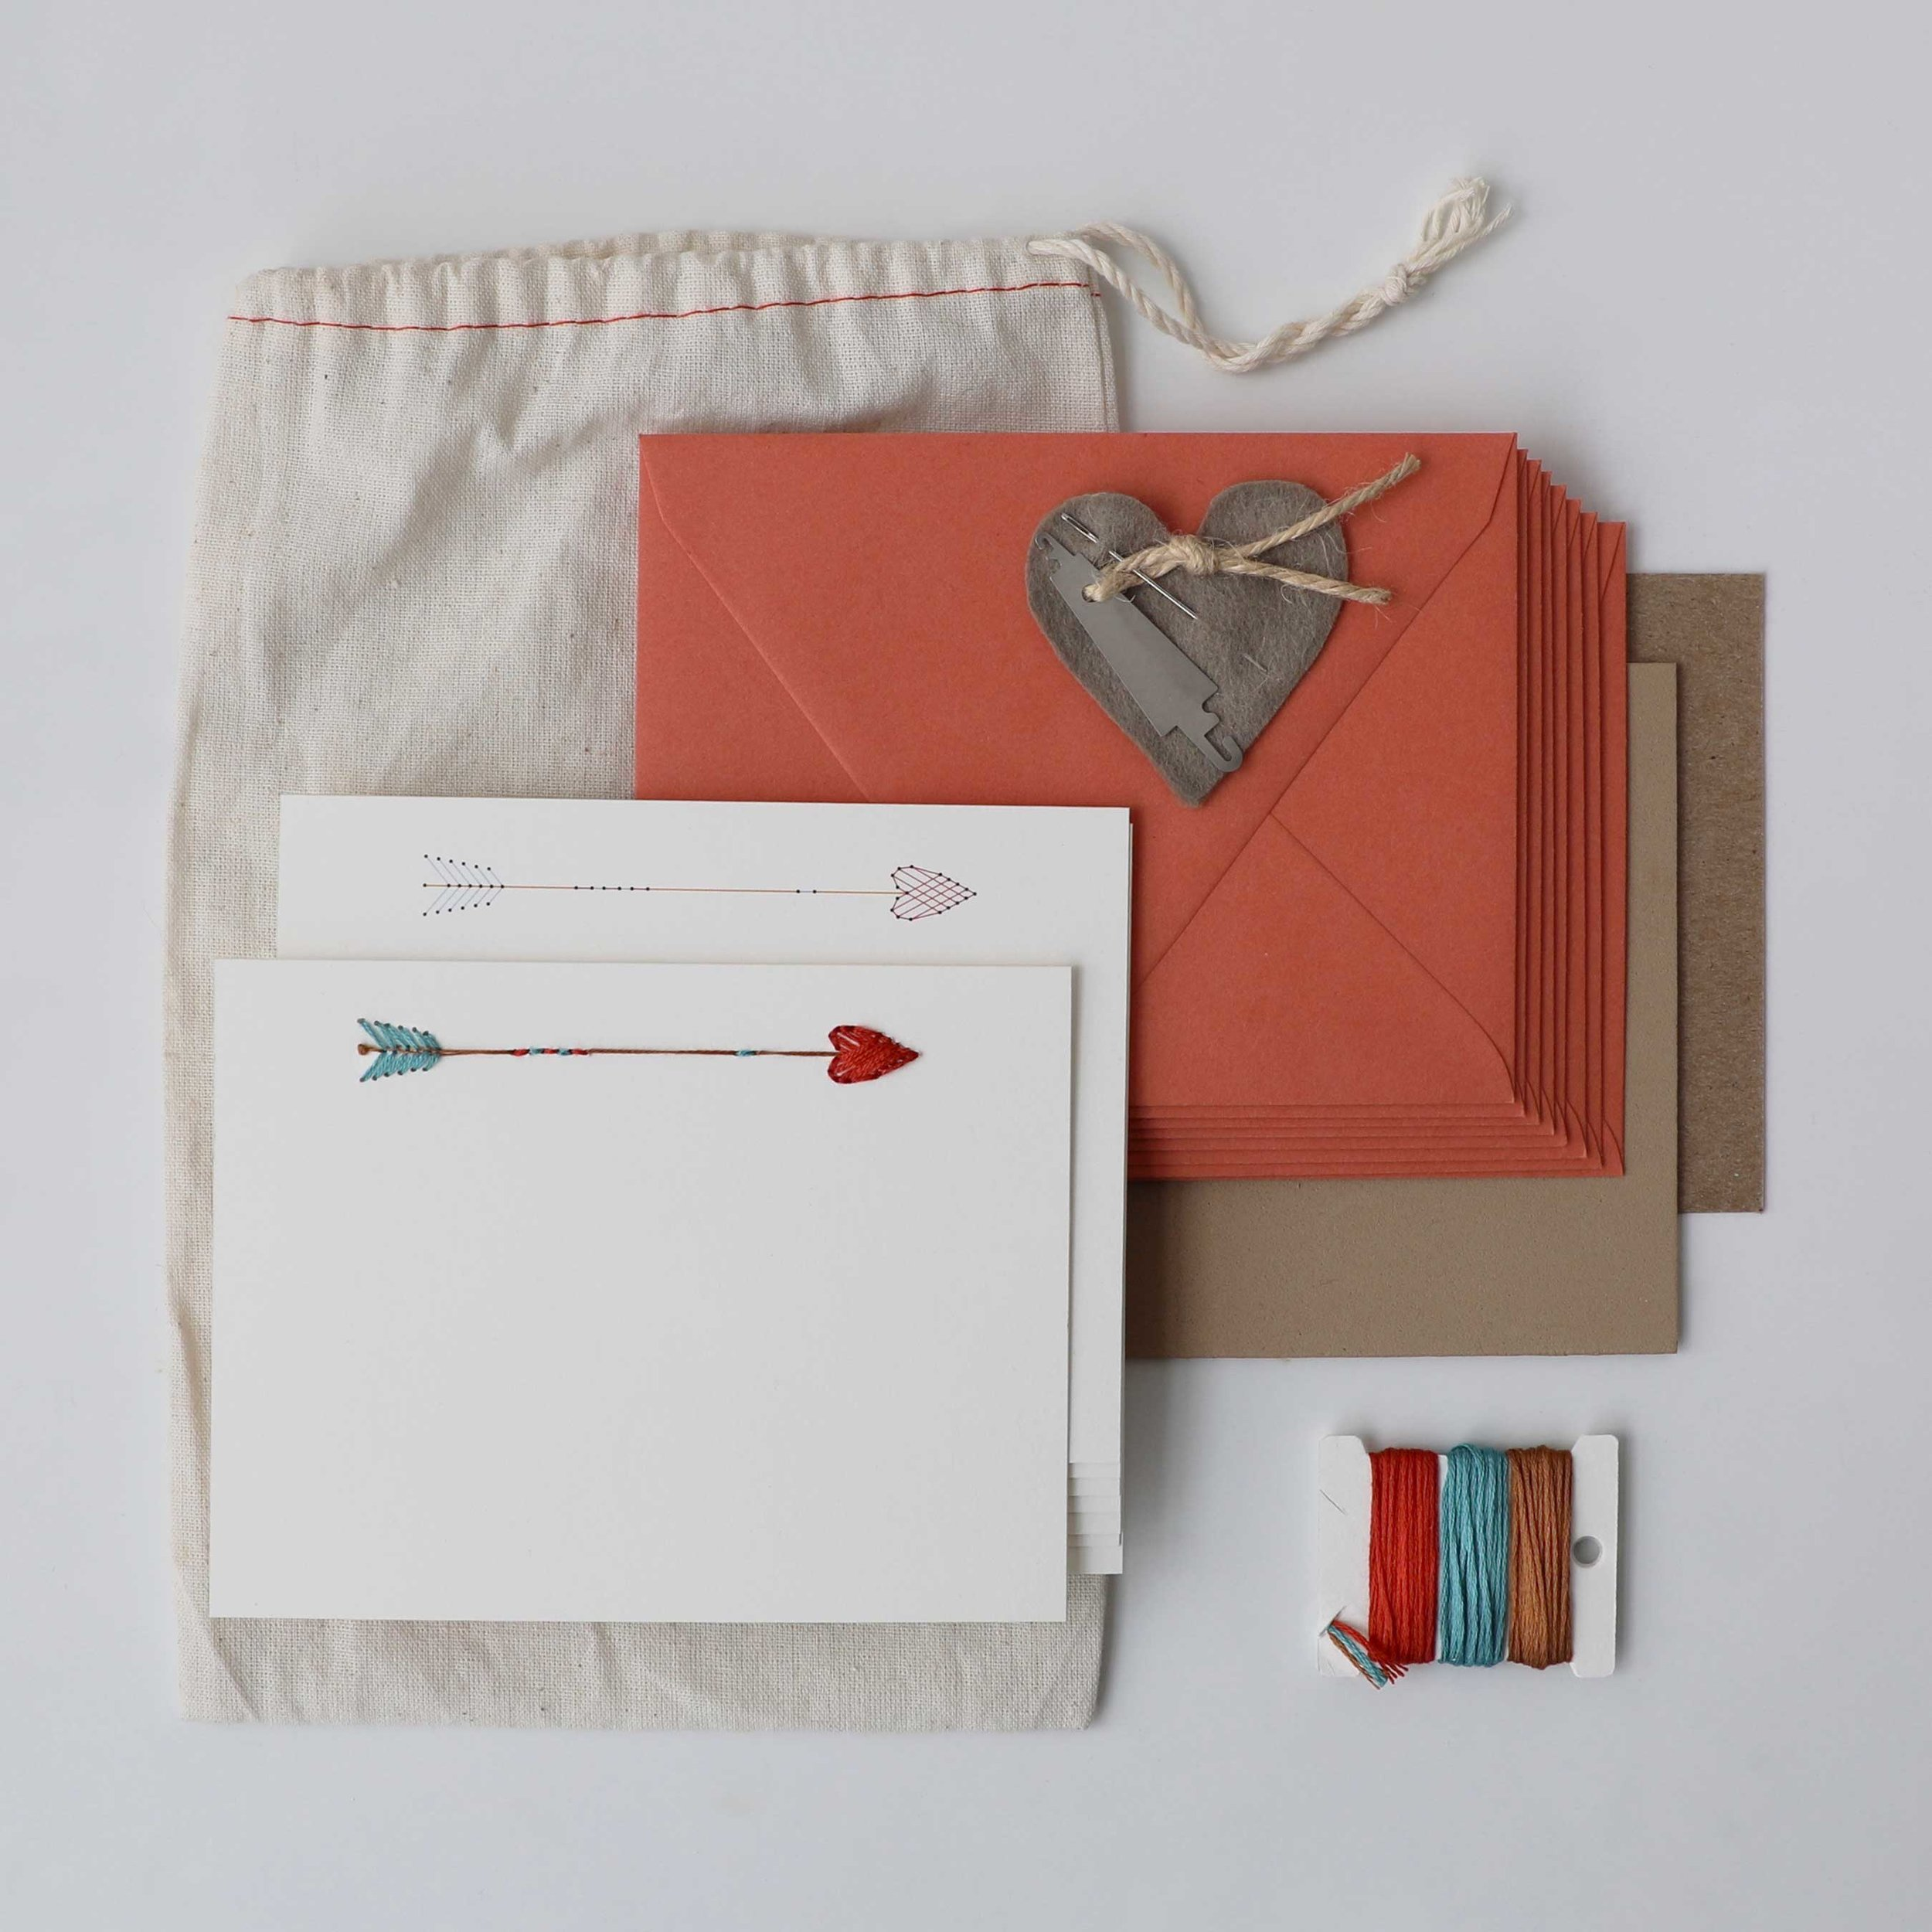 Embroidered Greeting Card Kit $25